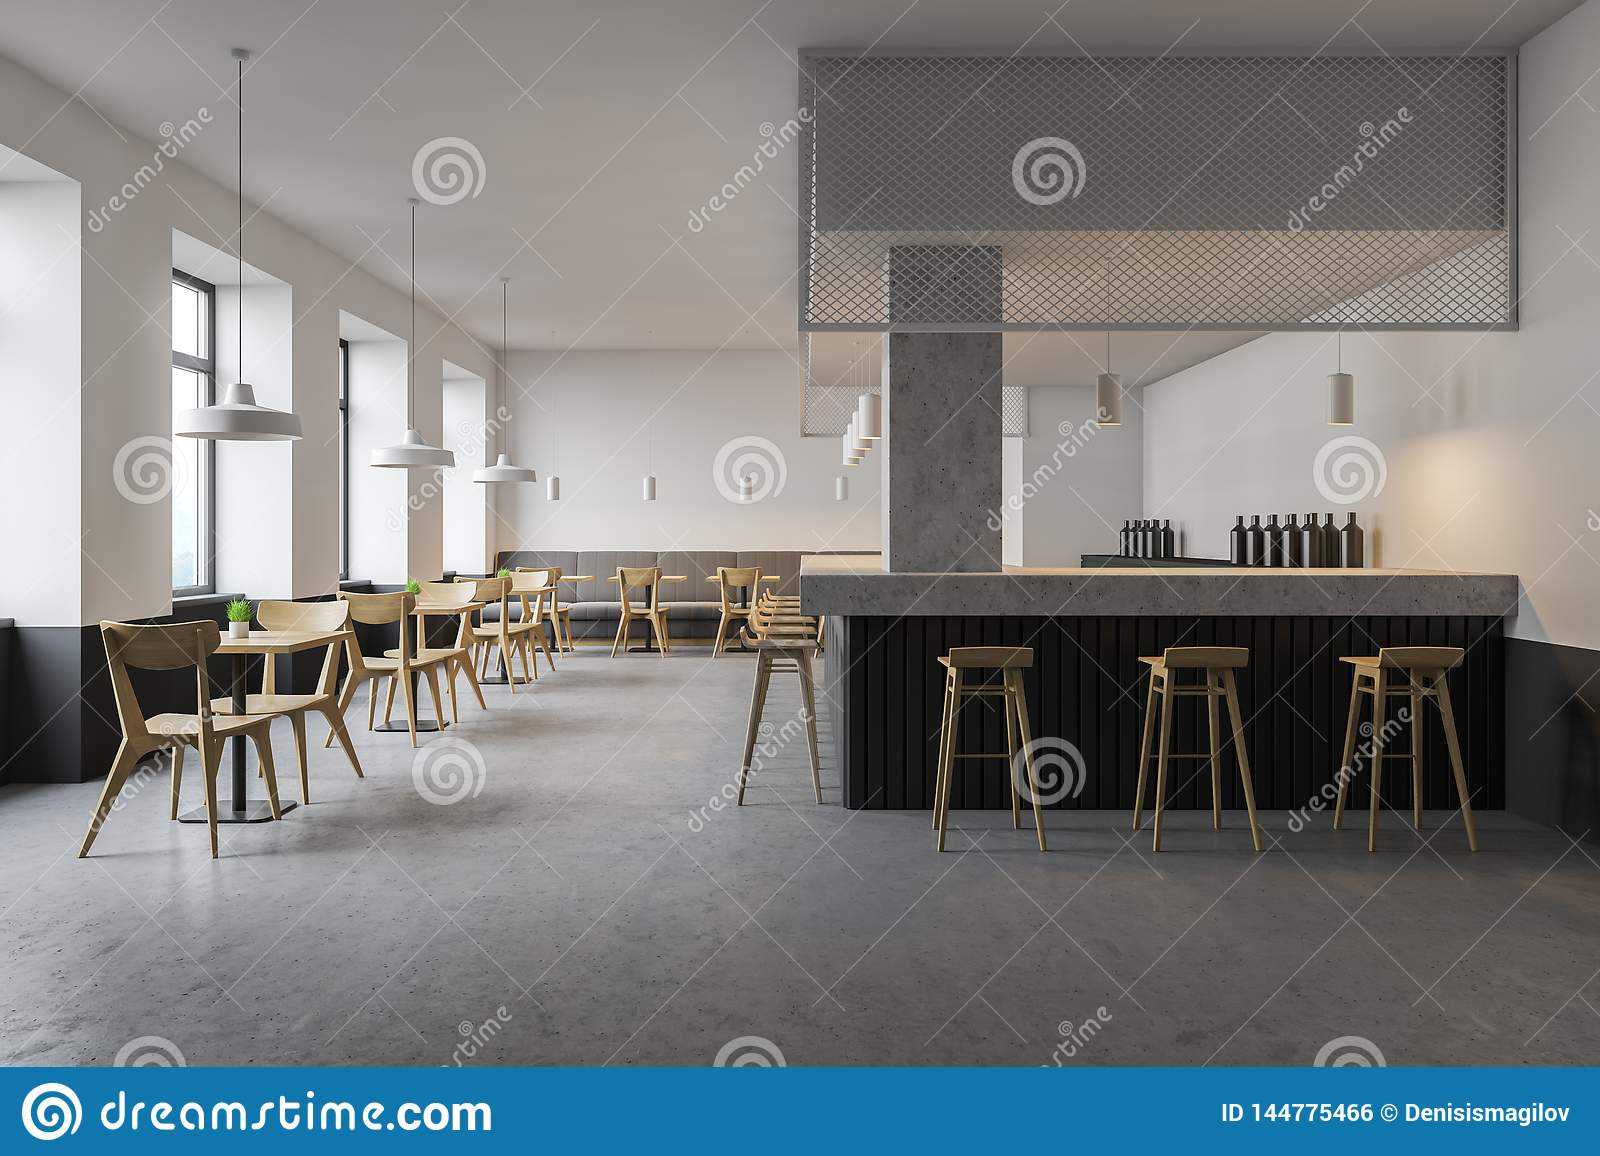 Interior Of Modern Cafe With Bar Stock Photo Image Of Couch Industry 144775466